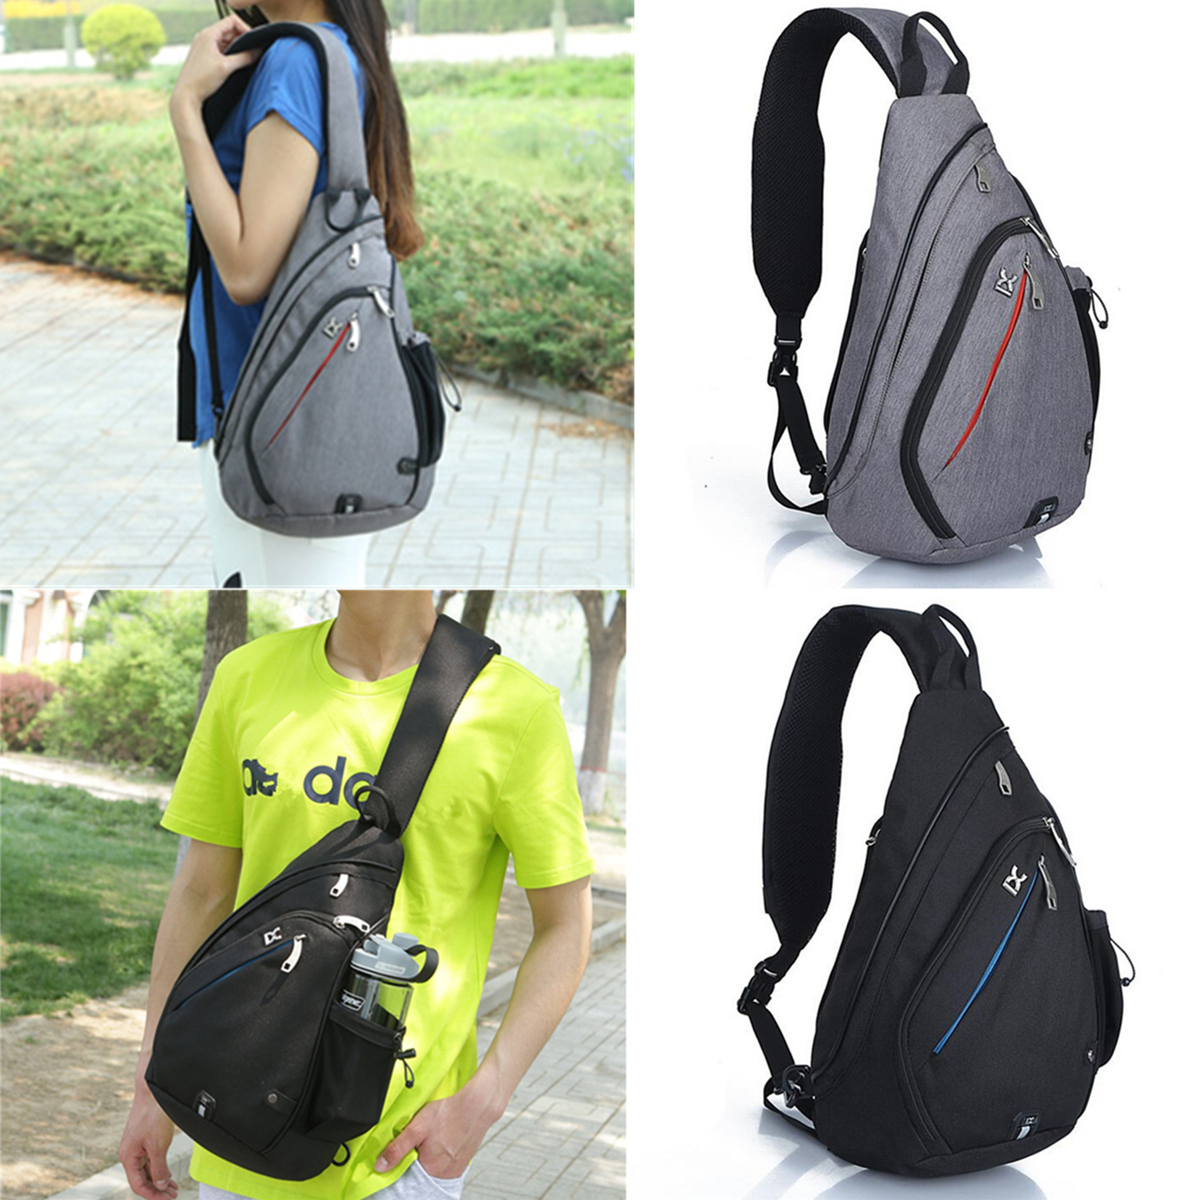 Sling Chest Bag Shoulder Backpack Crossbody Bag Daypack For Sport Travel School